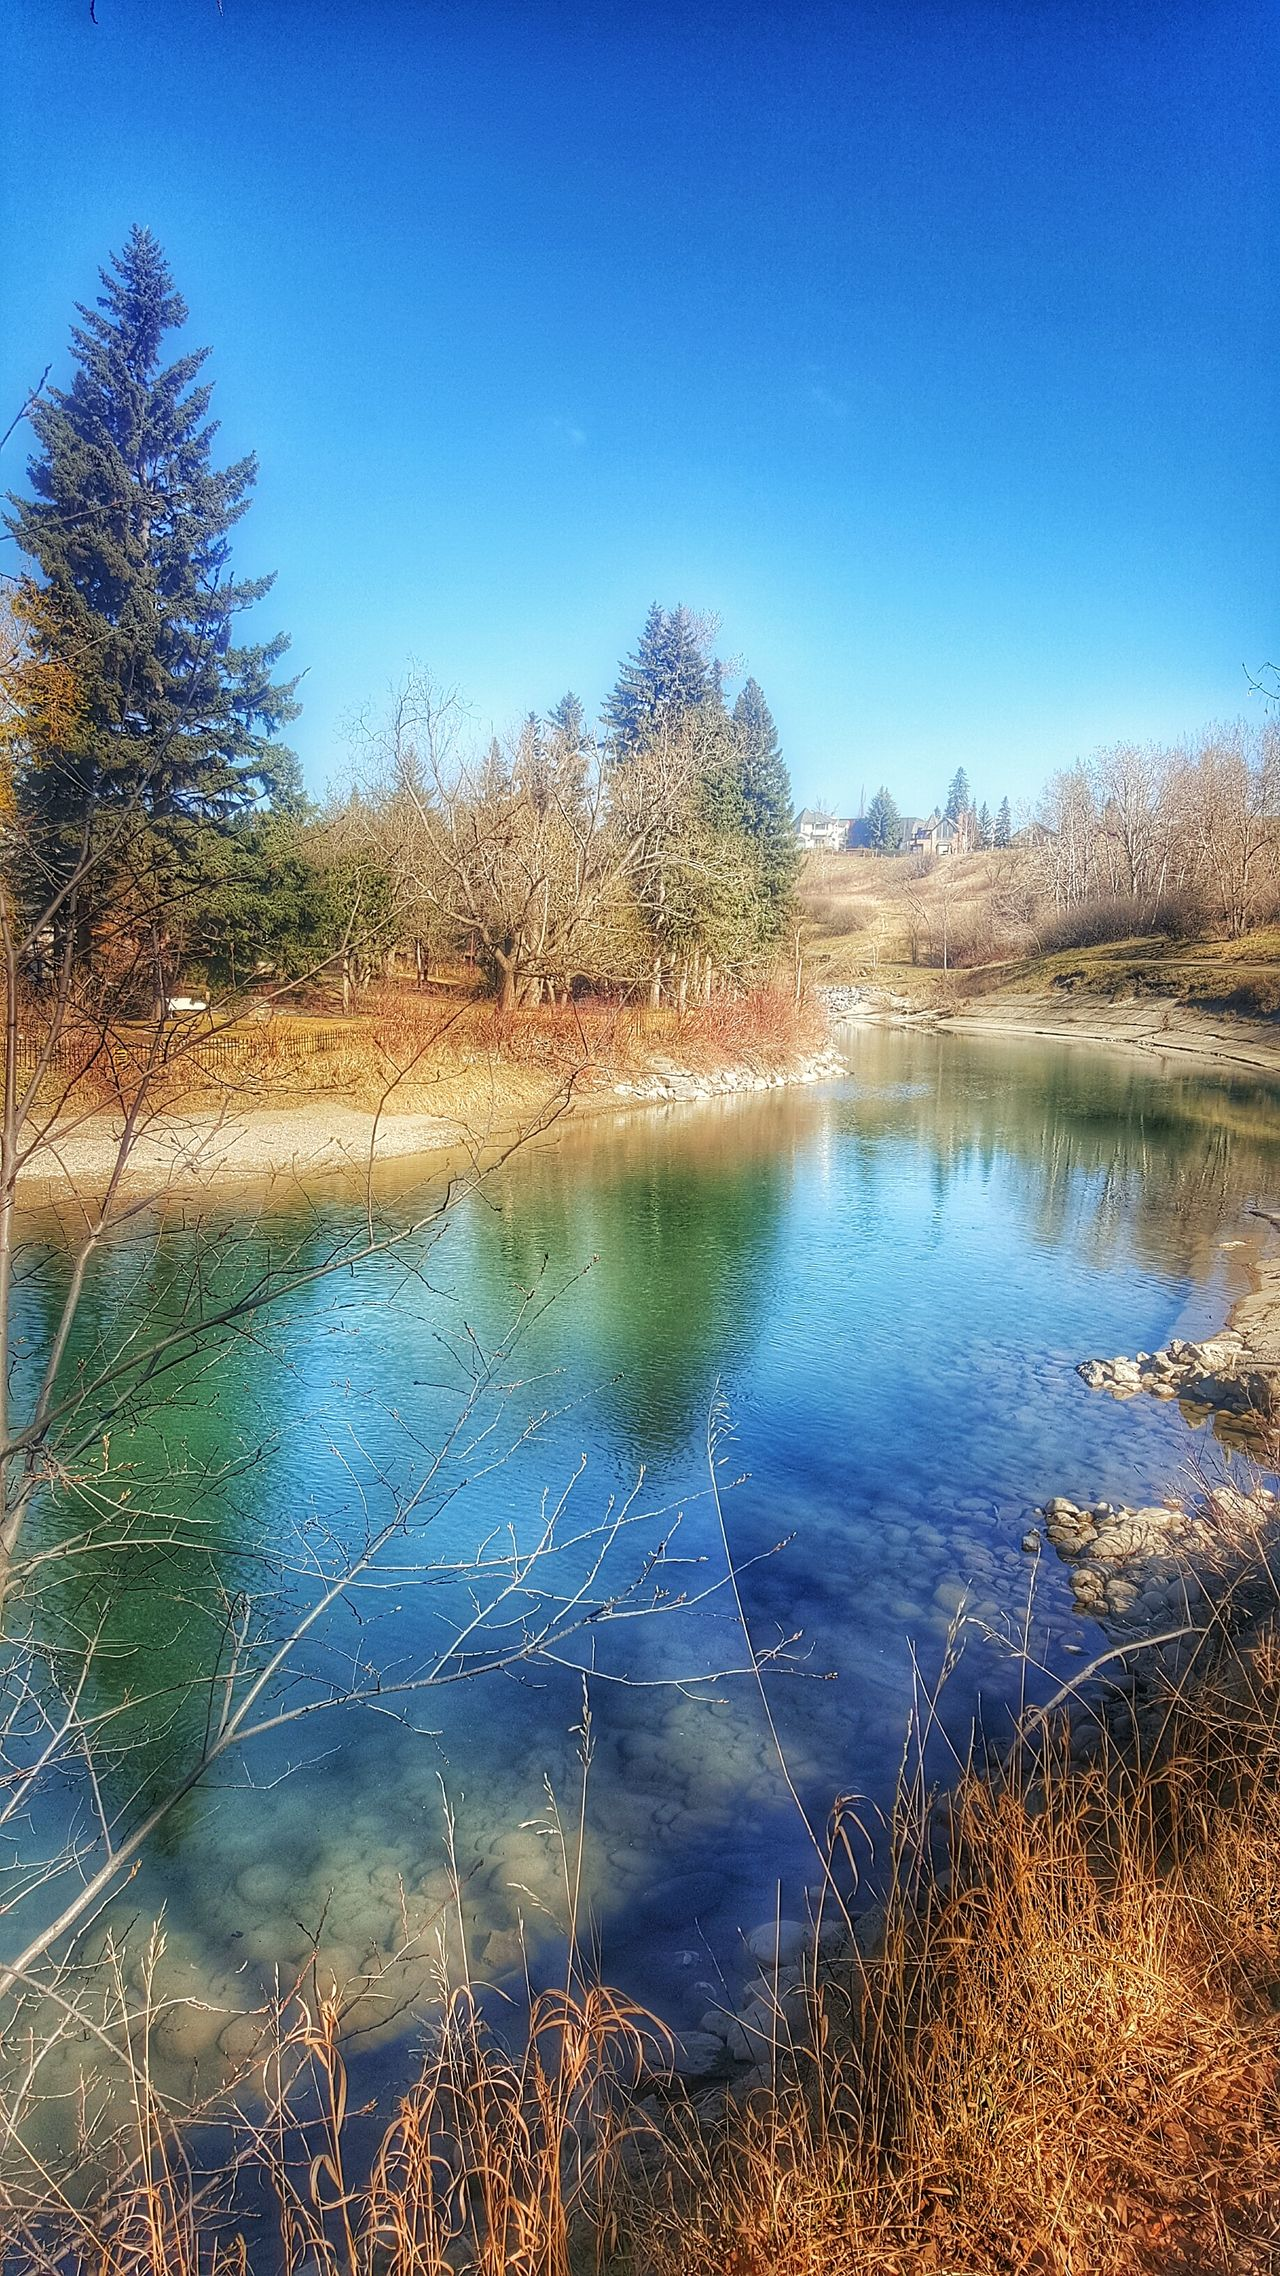 Serene Outdoors Trees Reflection Trees And Sky Enjoying Life Reflections In The Water Blue Sky Spring Day Springtime Serenity In The Sunshine Spring Walking Around The City